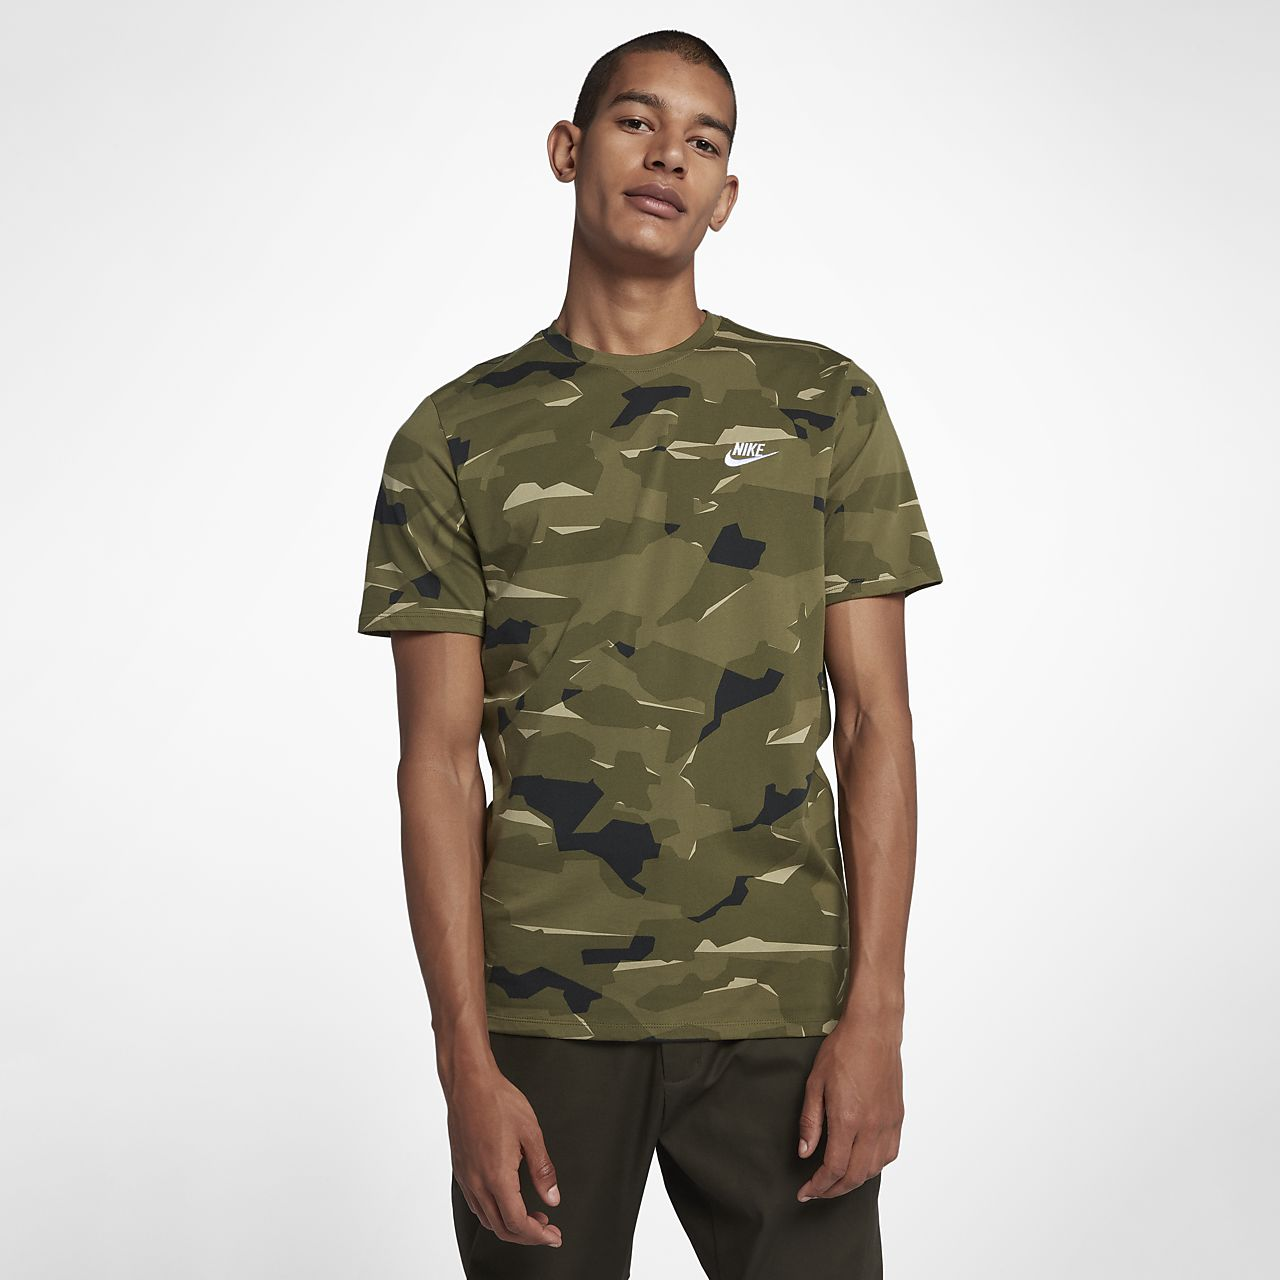 finest selection 78b9a 0f40c ... Tee-shirt camouflage Nike Sportswear pour Homme